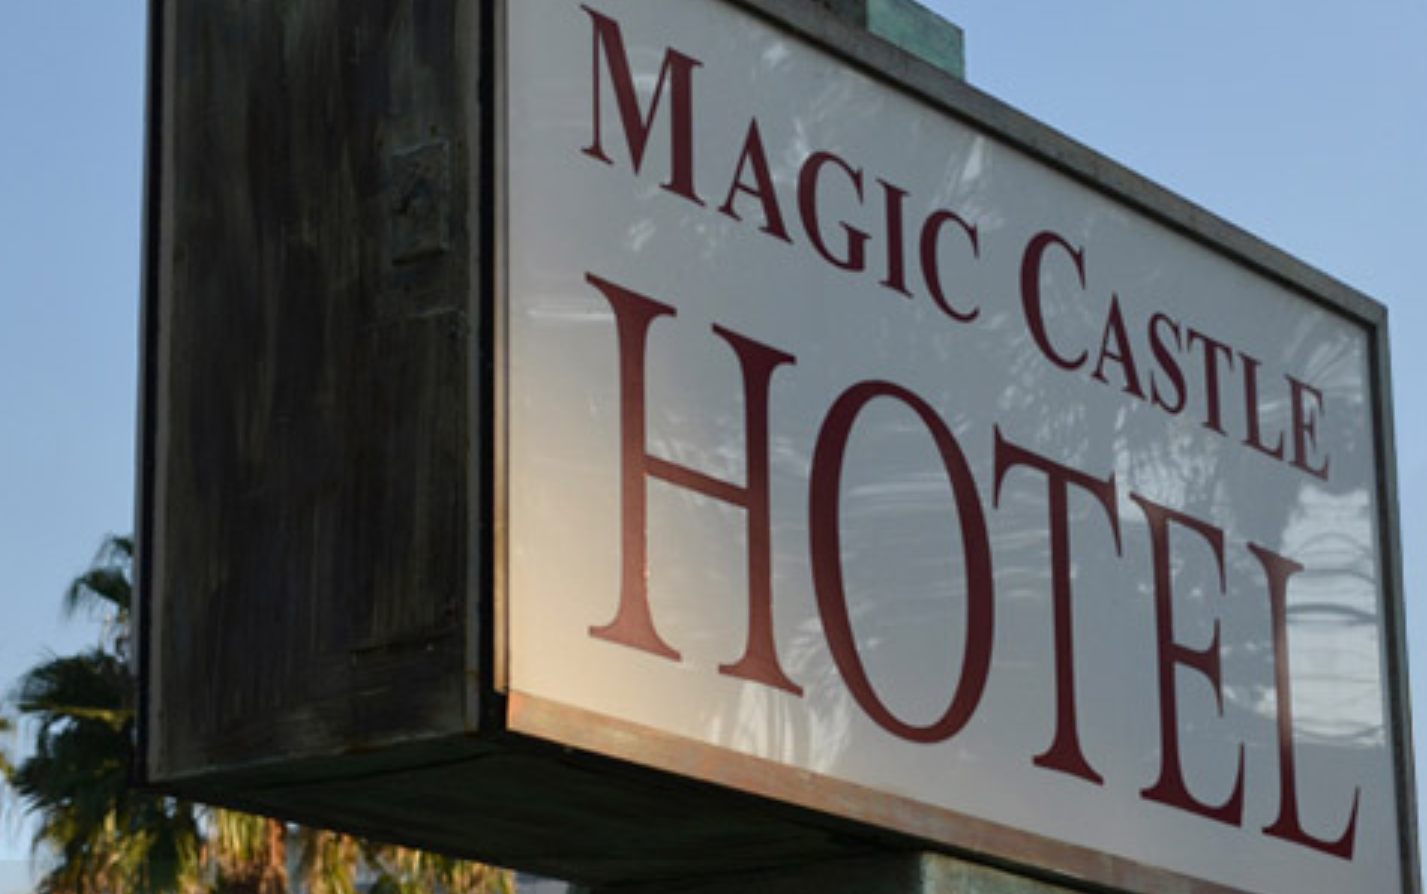 Lessons from Gary Vaynerchuk and the Magic Castle – ITPN-EP19